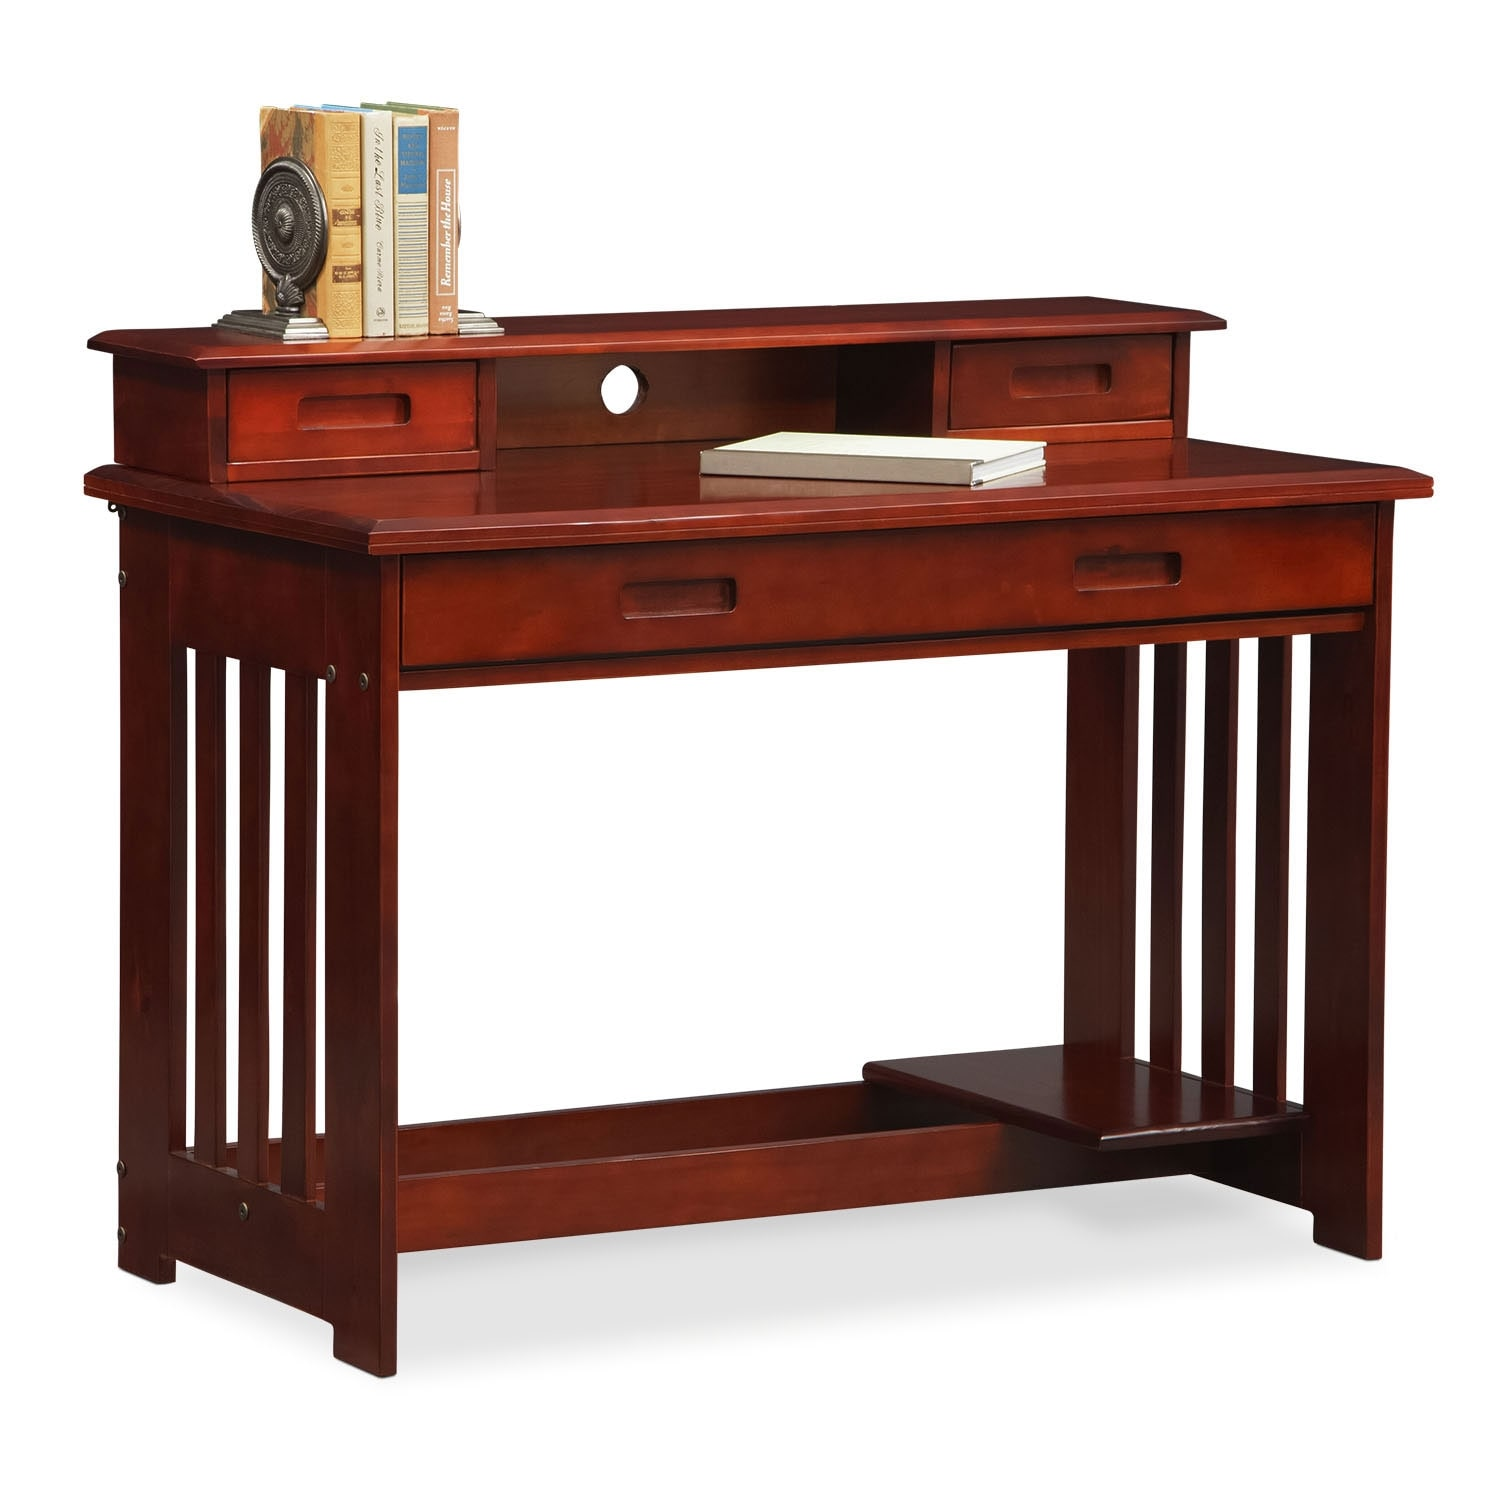 Ranger Desk with Hutch - Merlot